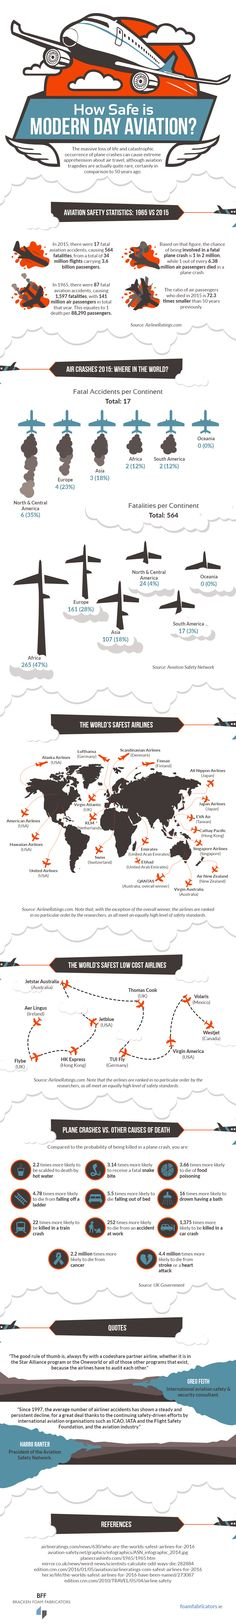 How do aviation safety statistics compare now to 50 years ago? Which airlines have the best safety record? Which part of the world sees the most air crashes? The answers to all of these can be found in the following infographic from Bracken Foam Fabricators.